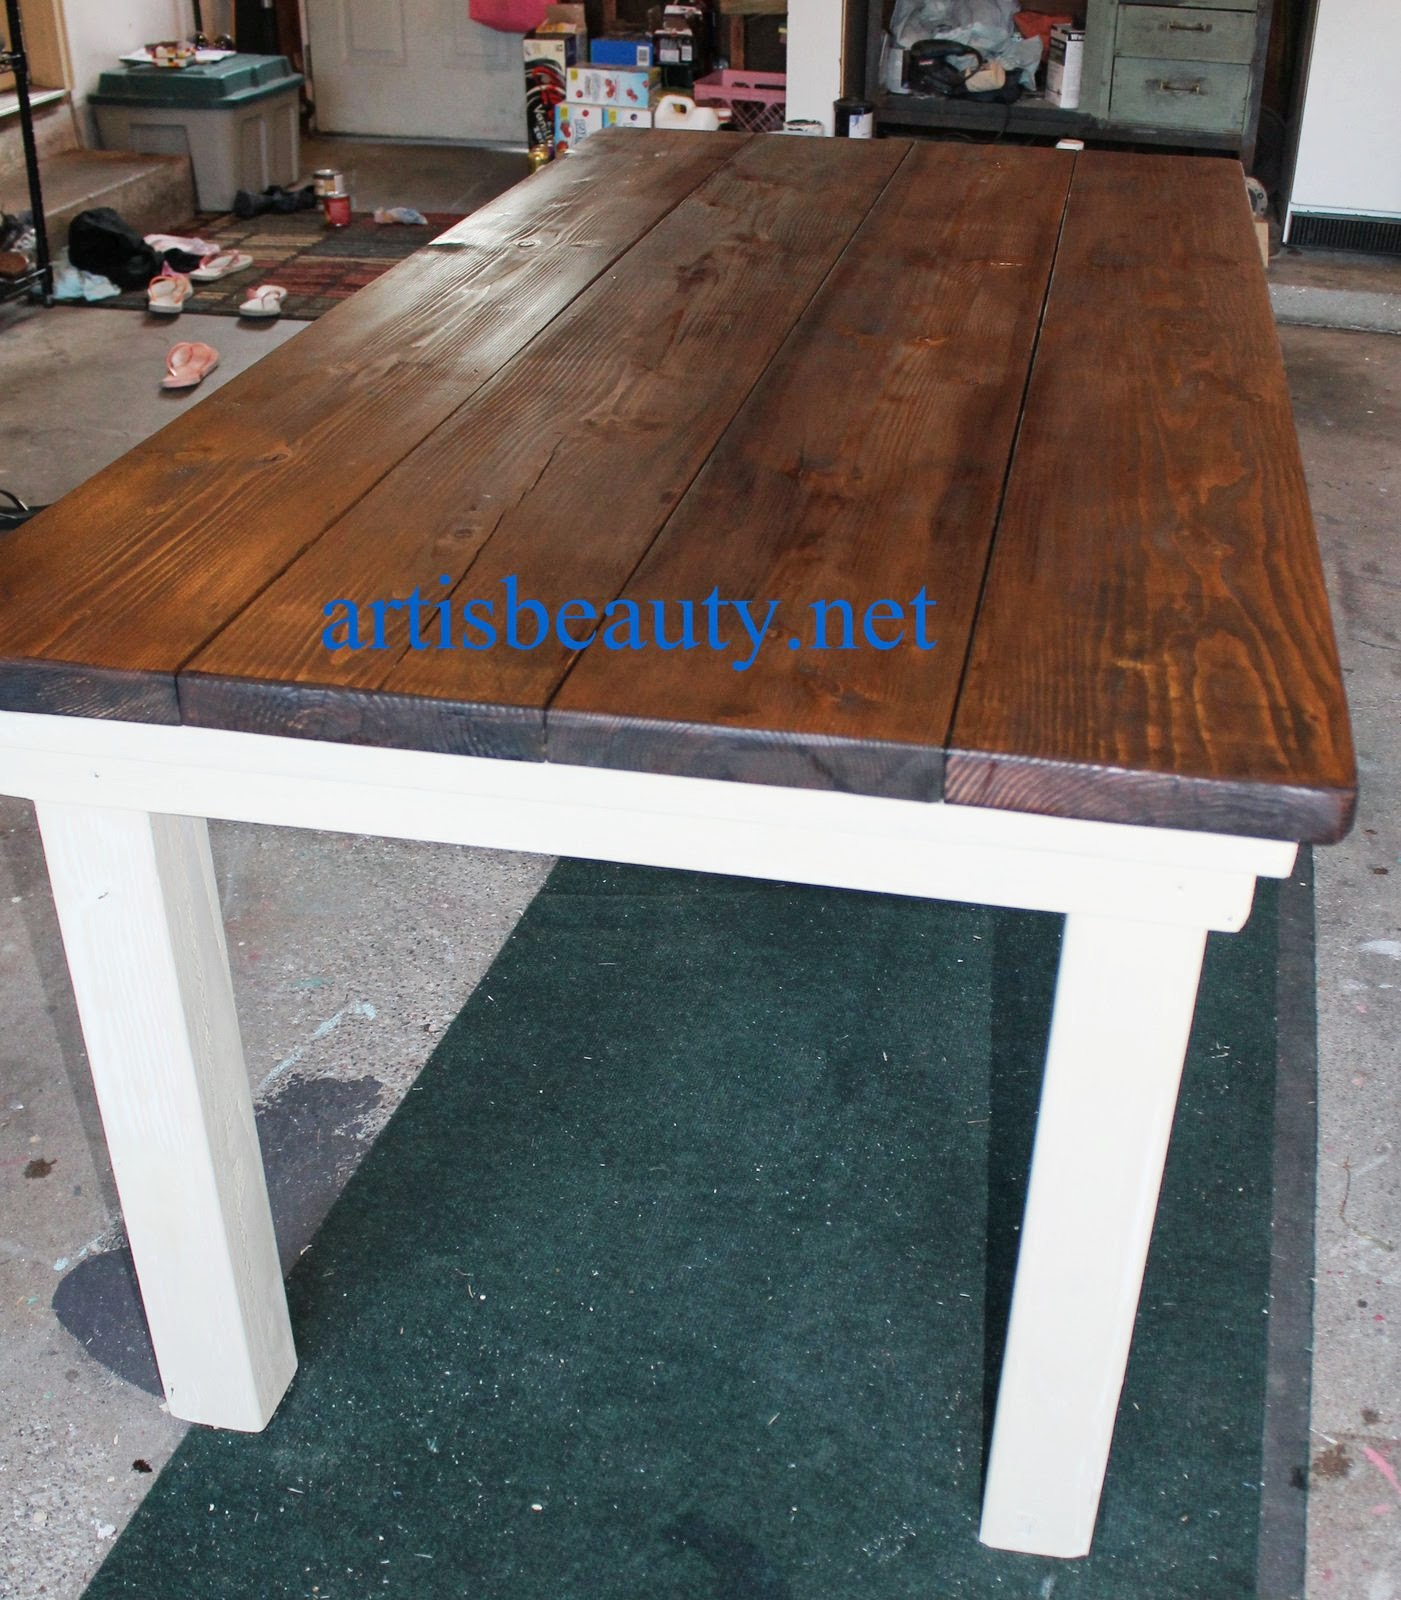 ART IS BEAUTY: How to build your own FarmHouse Table for